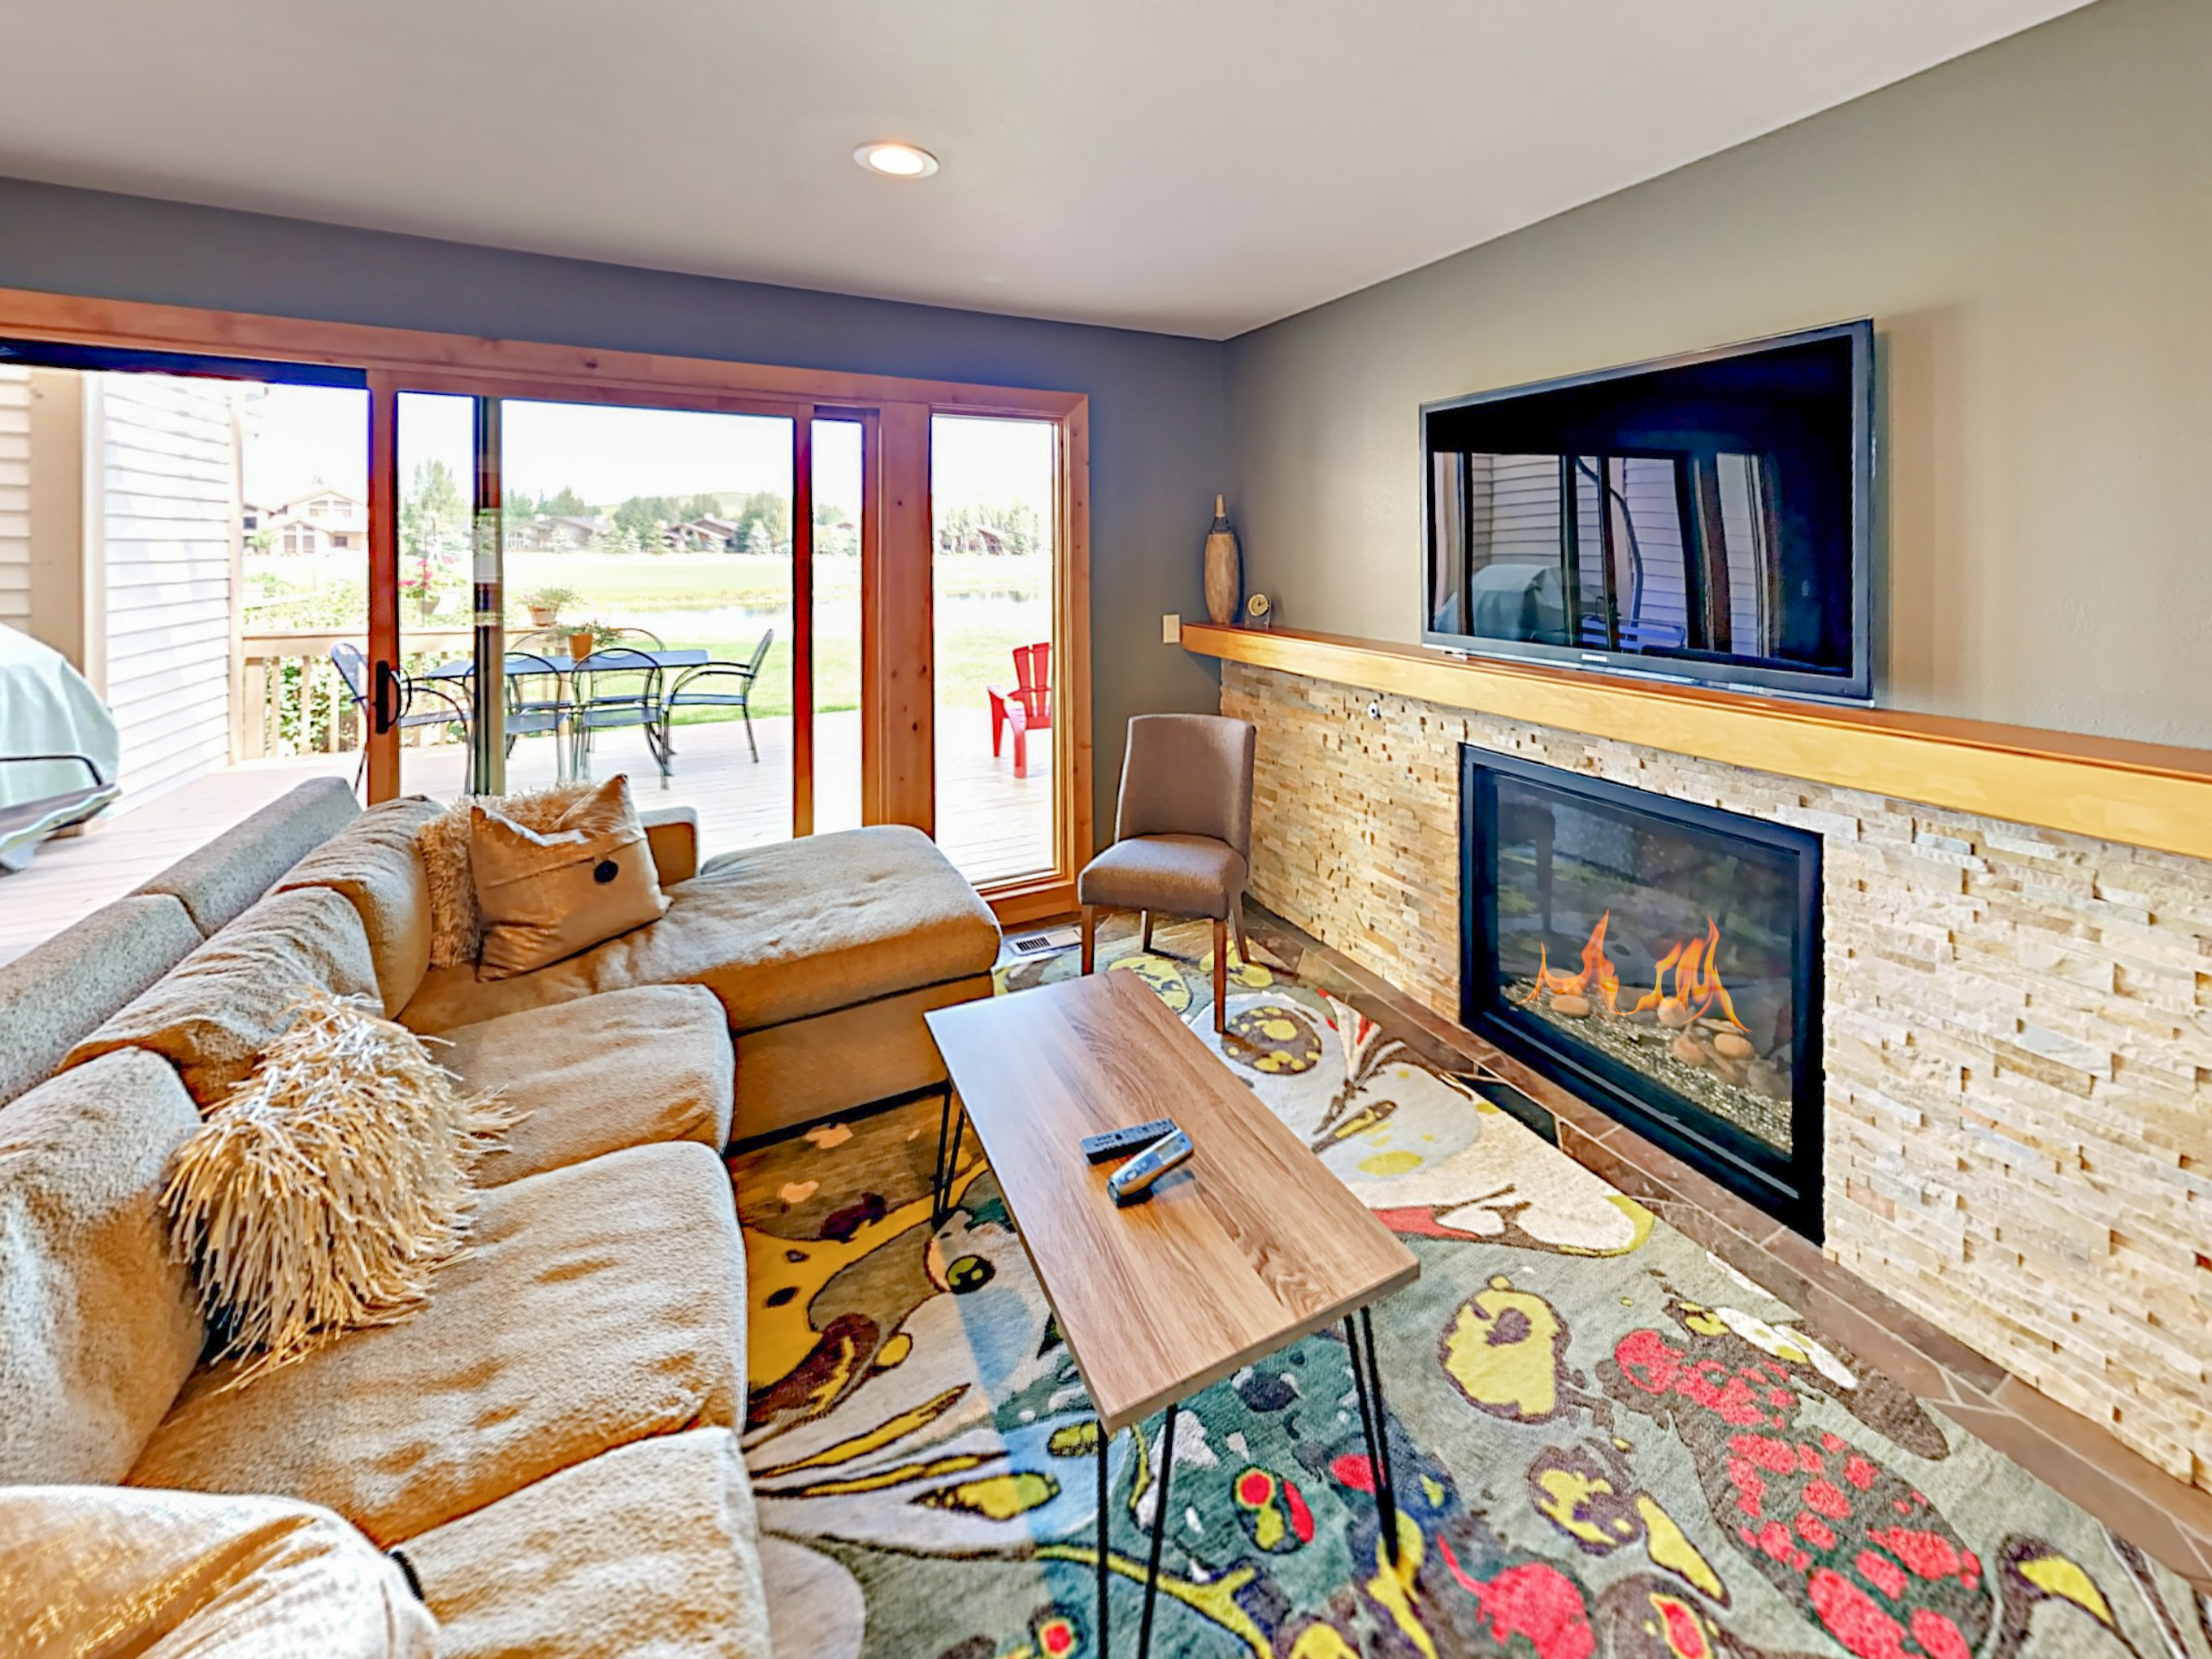 Park City UT Vacation Rental Spanning wall-to-wall, the